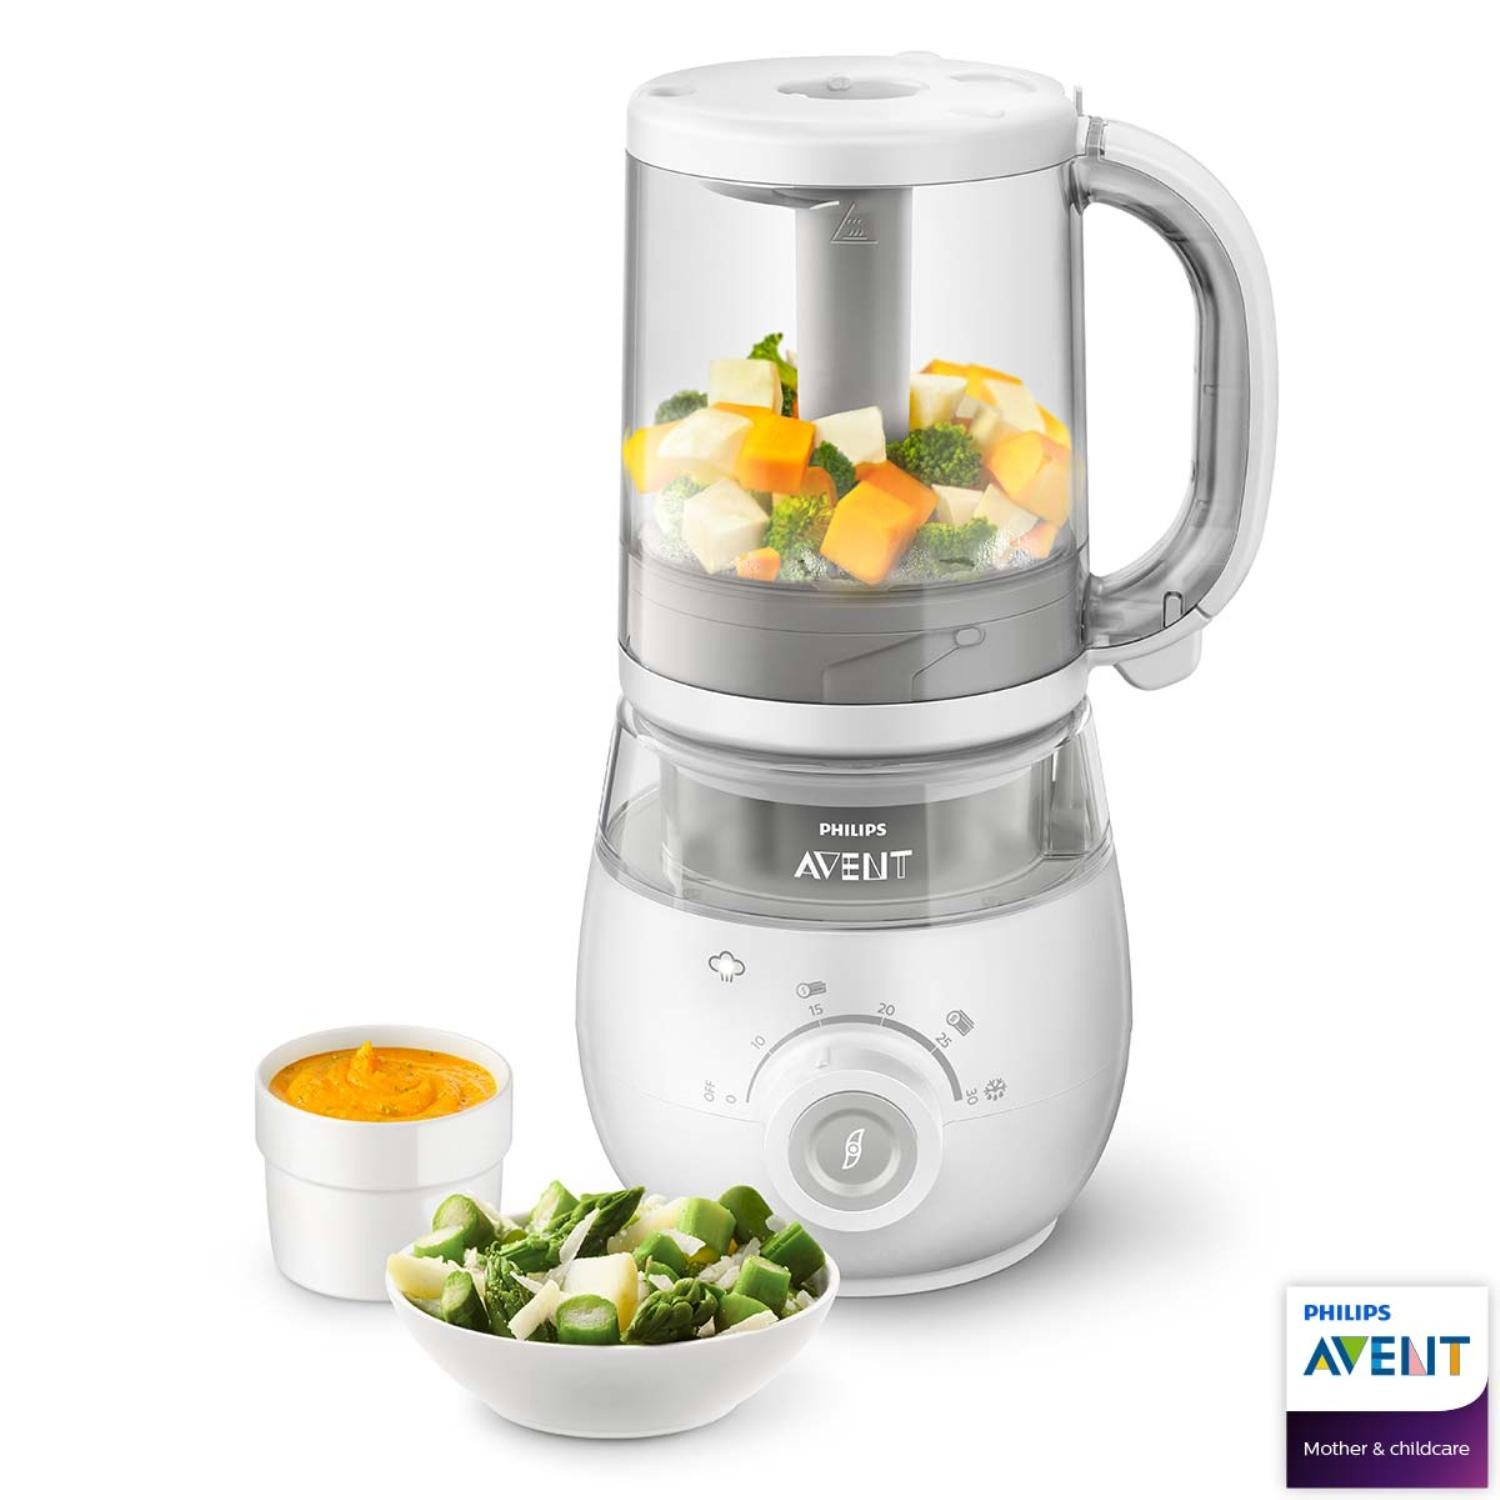 Philips Avent SCF875/01 4-in-1 Baby Food Maker, Steamer and Blender with Easy-to-Use Reheating or Defrosting Functions Phílips